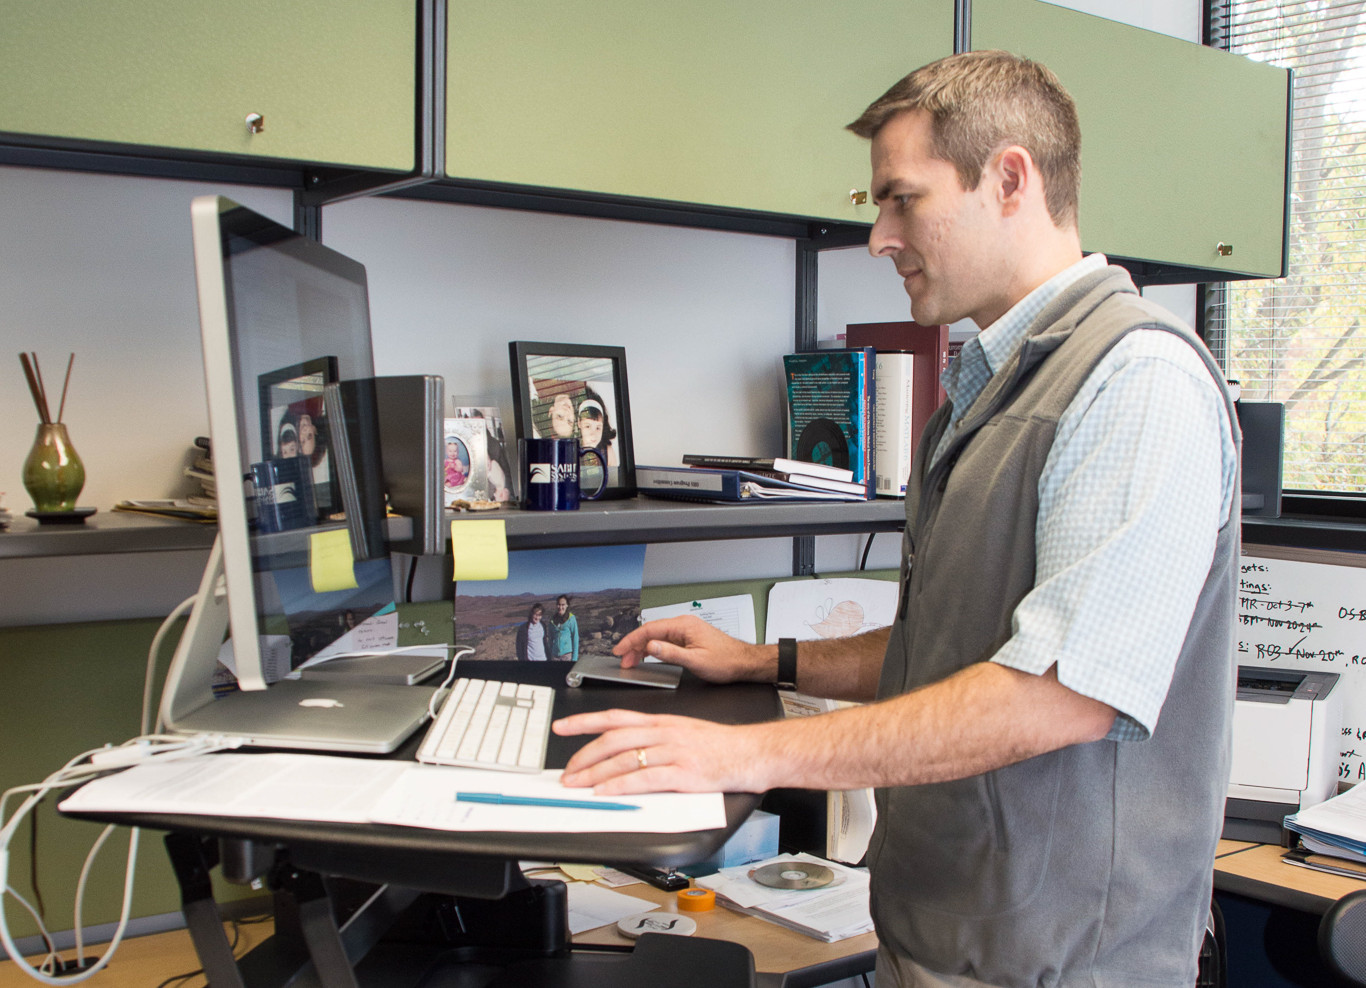 Oklahoma Medical Research Foundation Scientist Tim Griffin, Ph.D. Using His  Standing Desk.